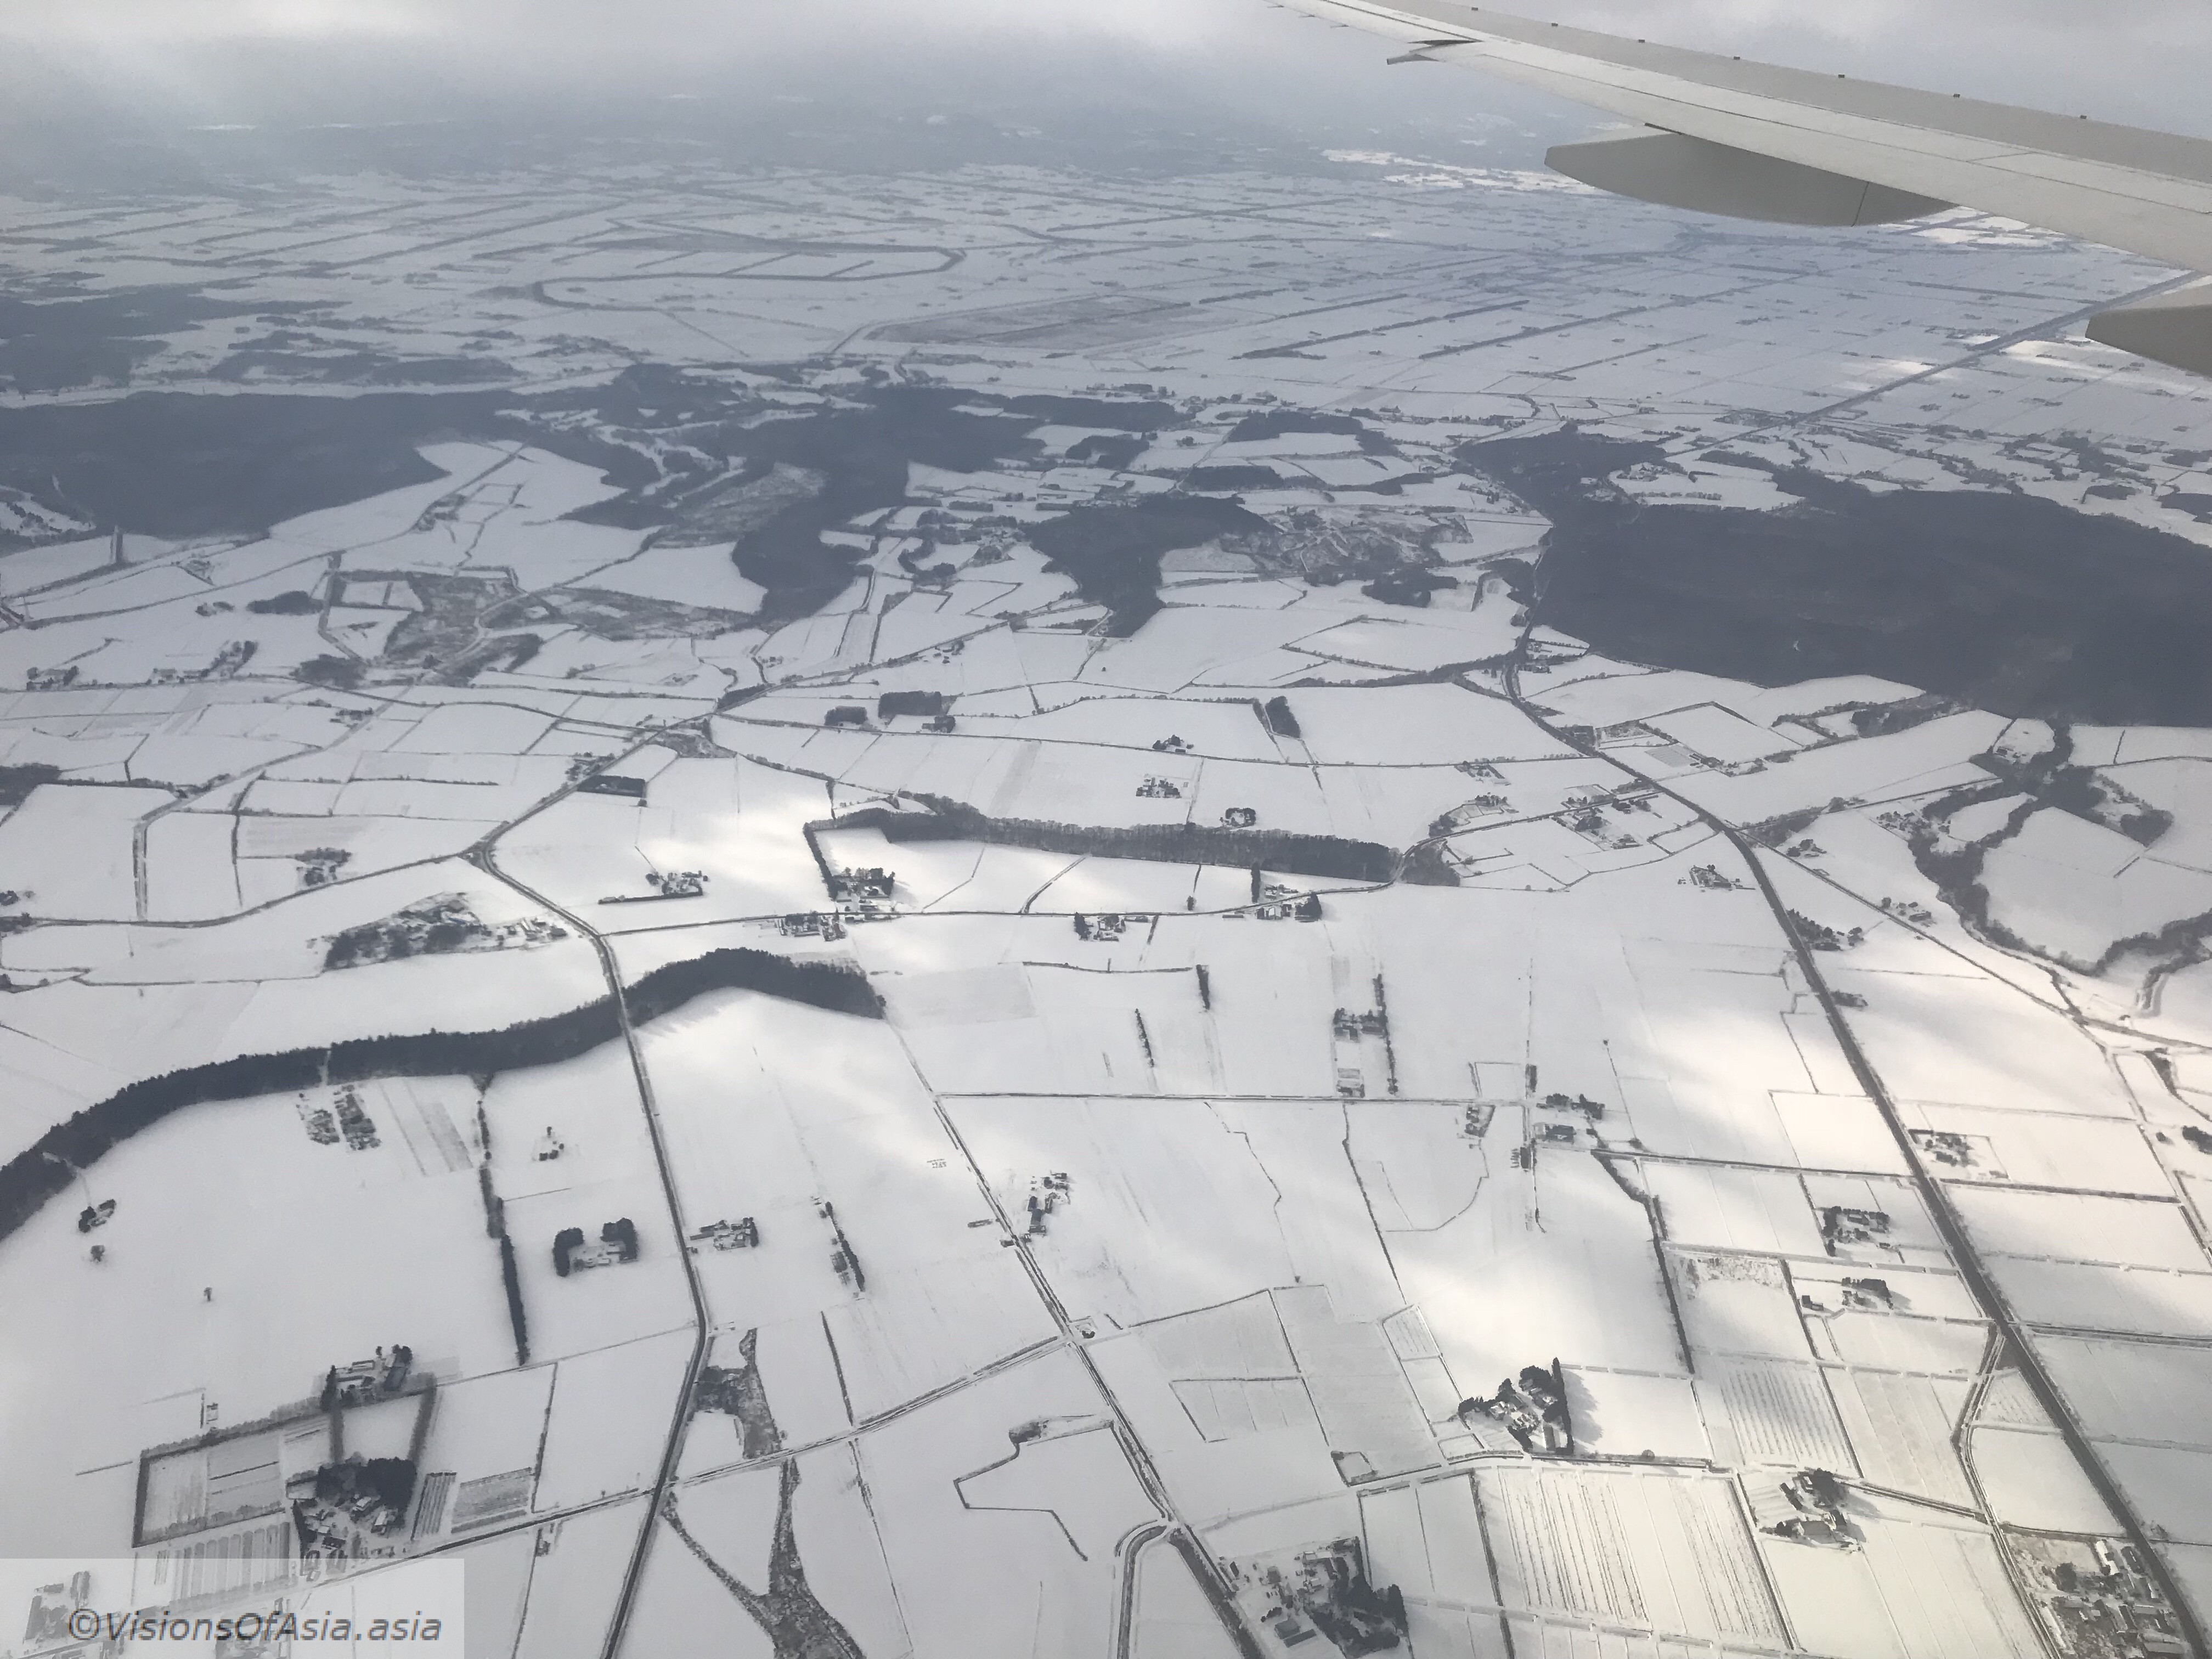 First glimpse of snow over Hokkaido